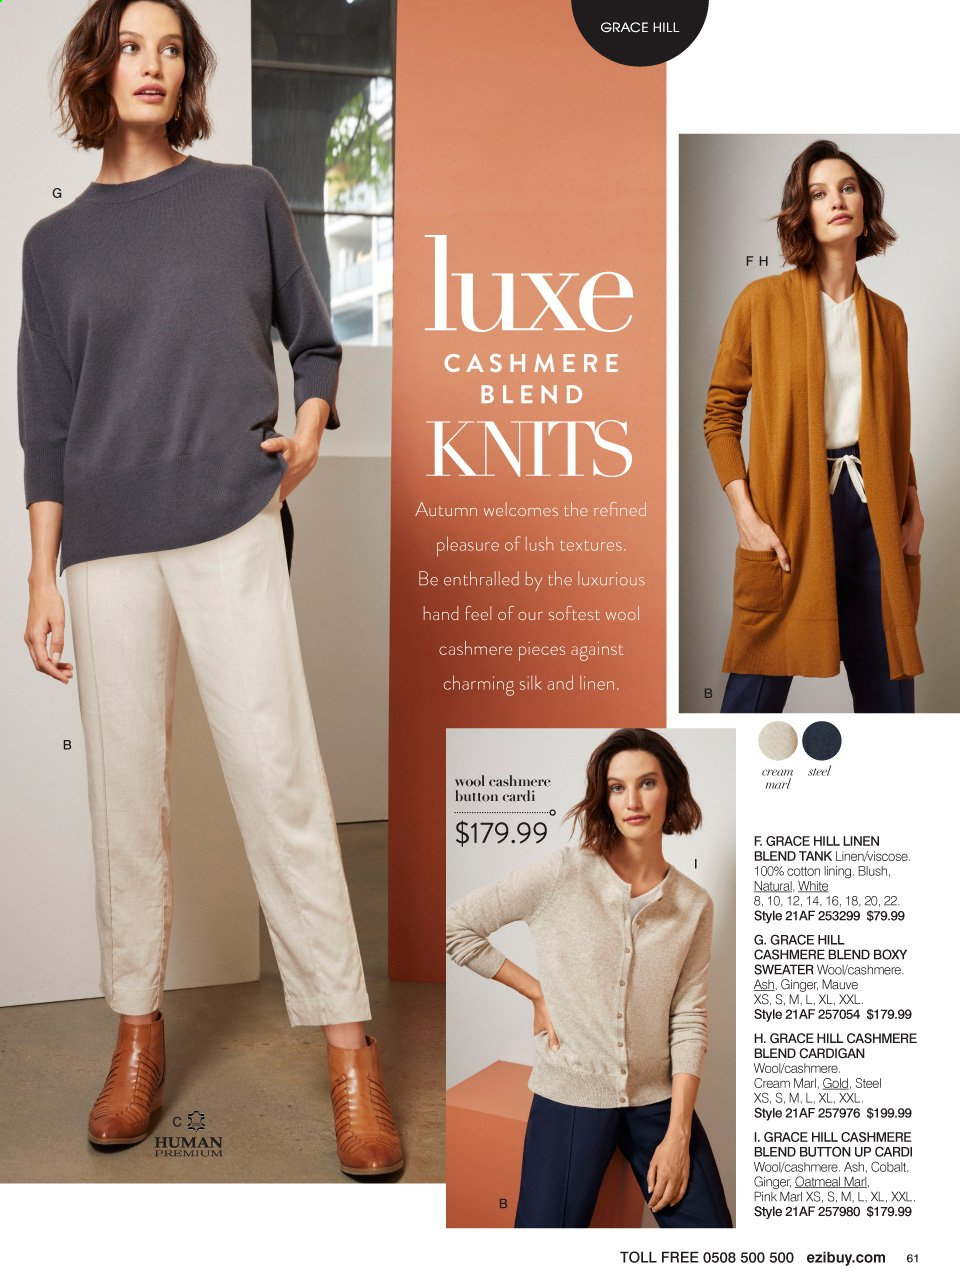 Ezibuy mailer - 01.03.2021 - 28.03.2021 - Sales products - Human Premium, cardigan, sweater. Page 61.